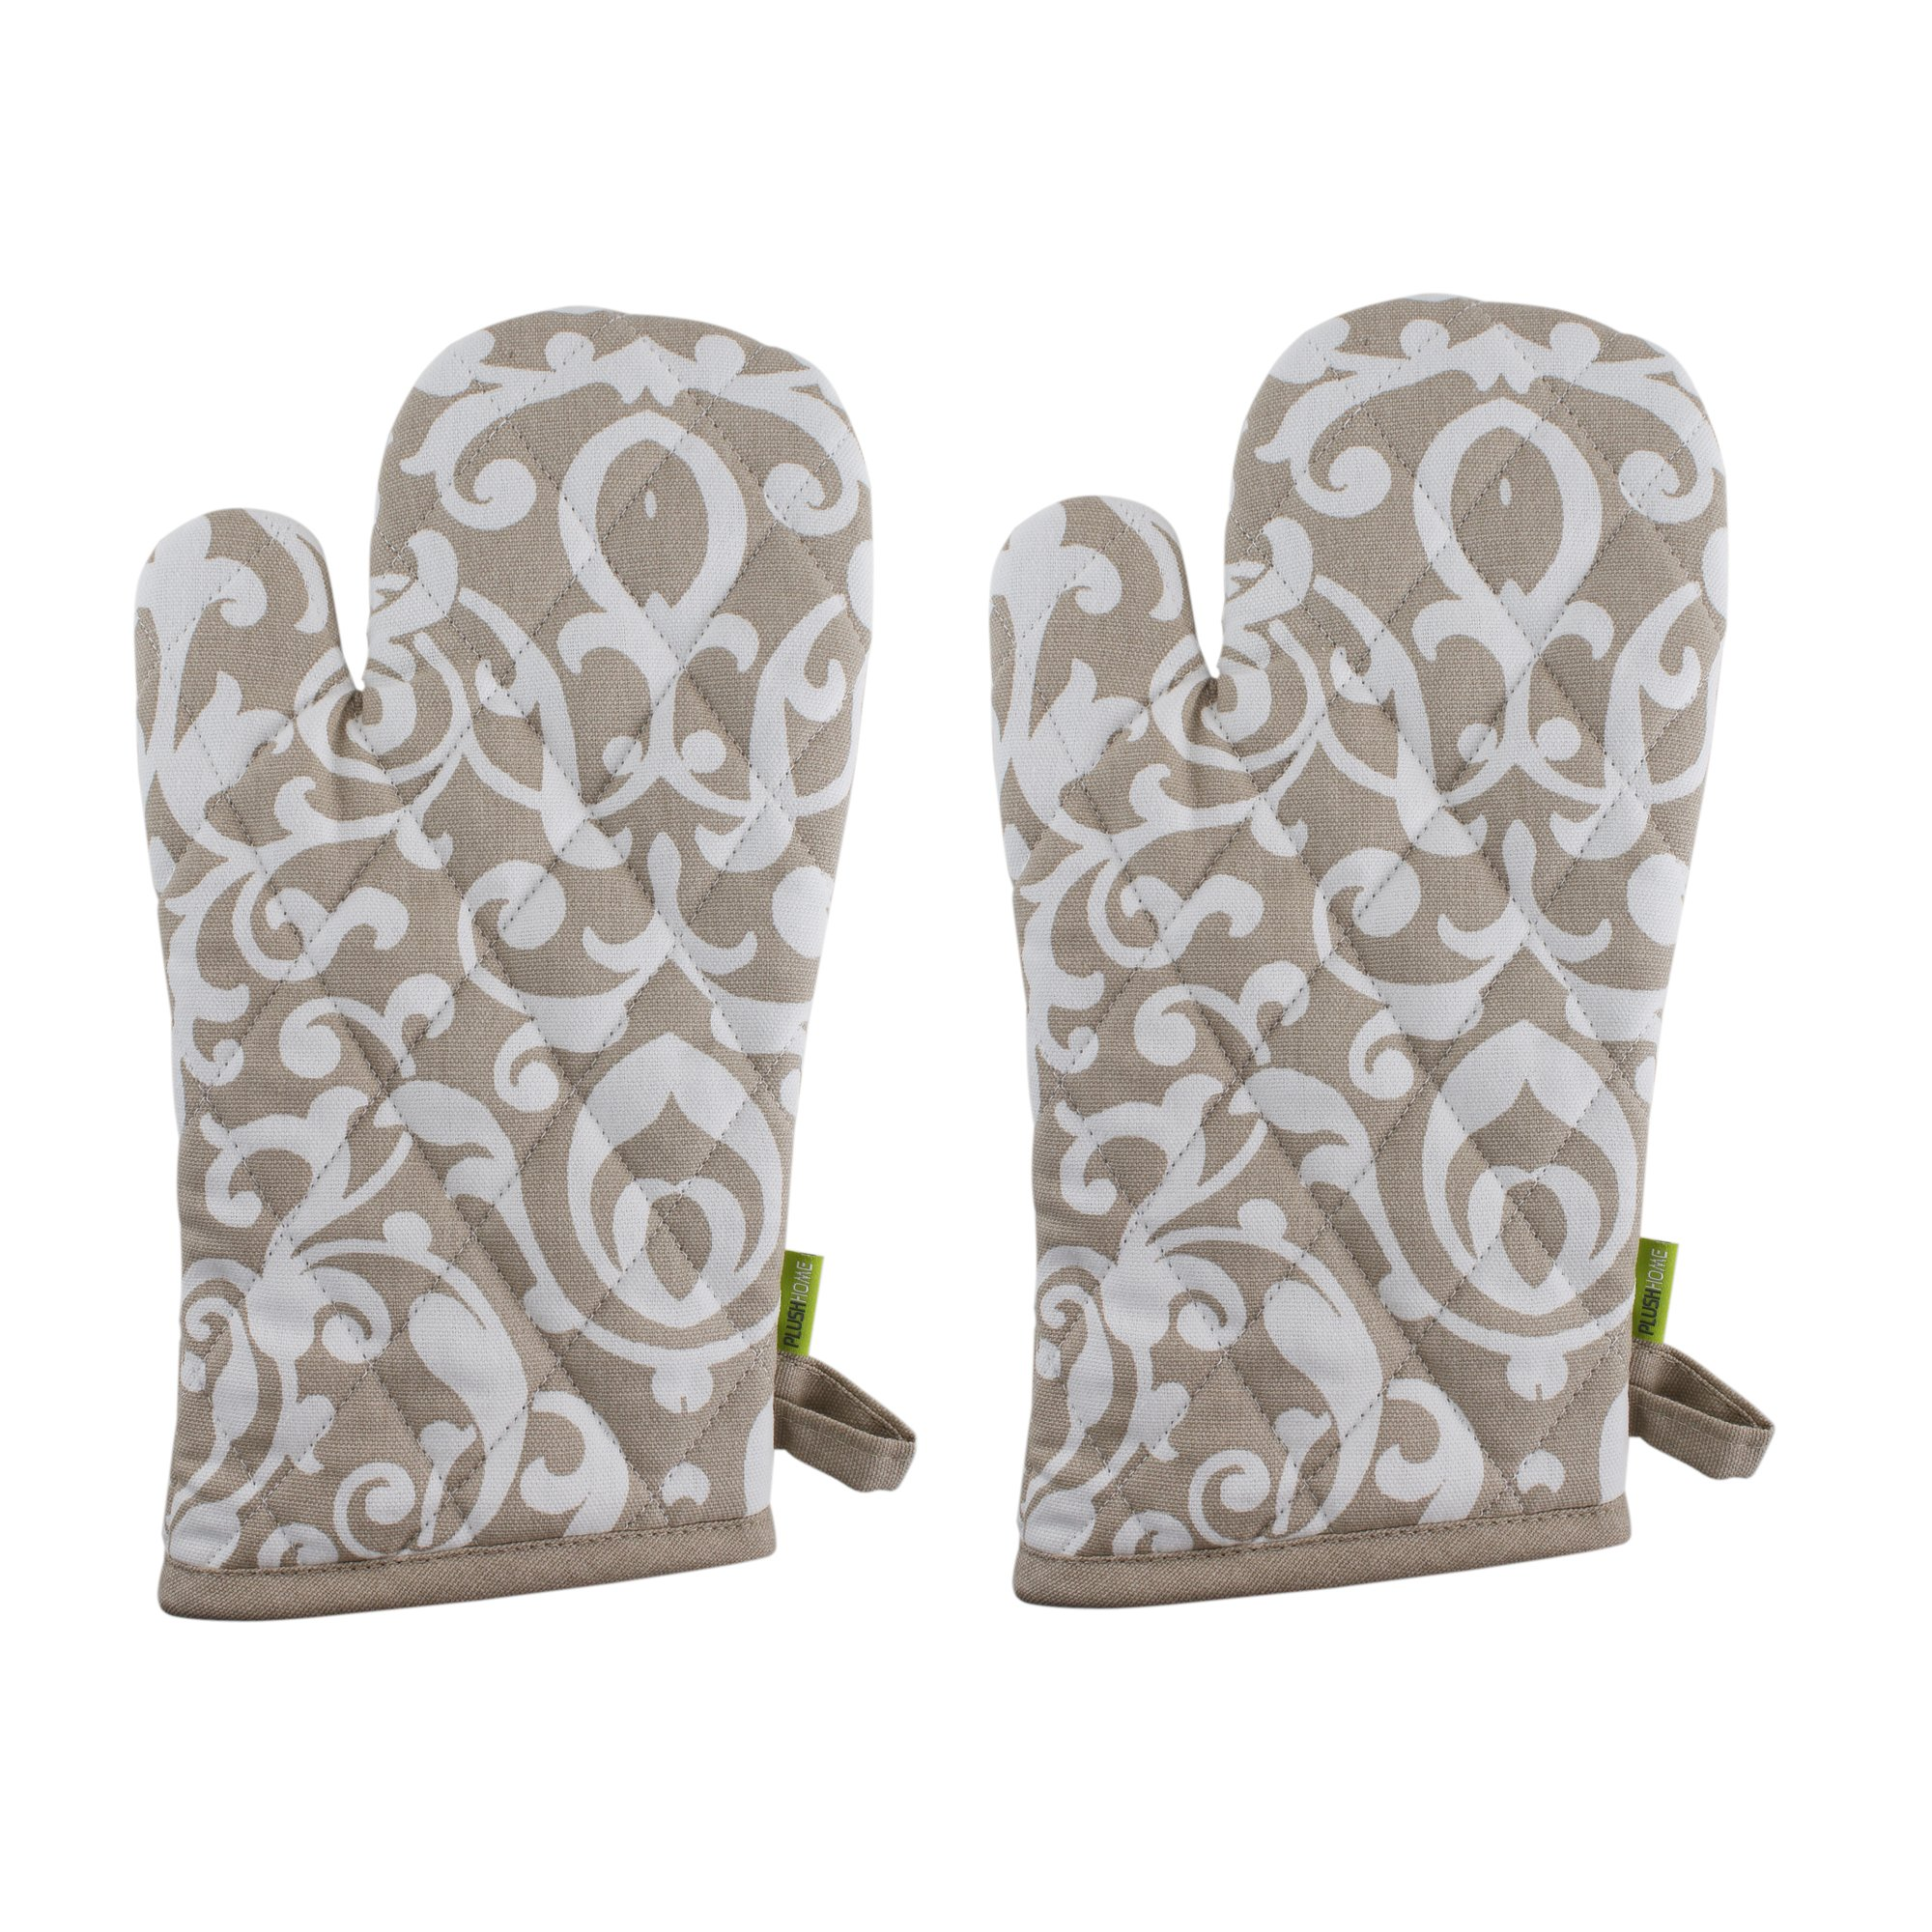 """Set of 2 Oven Mitts, 100% Cotton of Size 7""""X12 Inch, Eco-Friendly & Safe, Beige Baroque Design for Kitchen"""